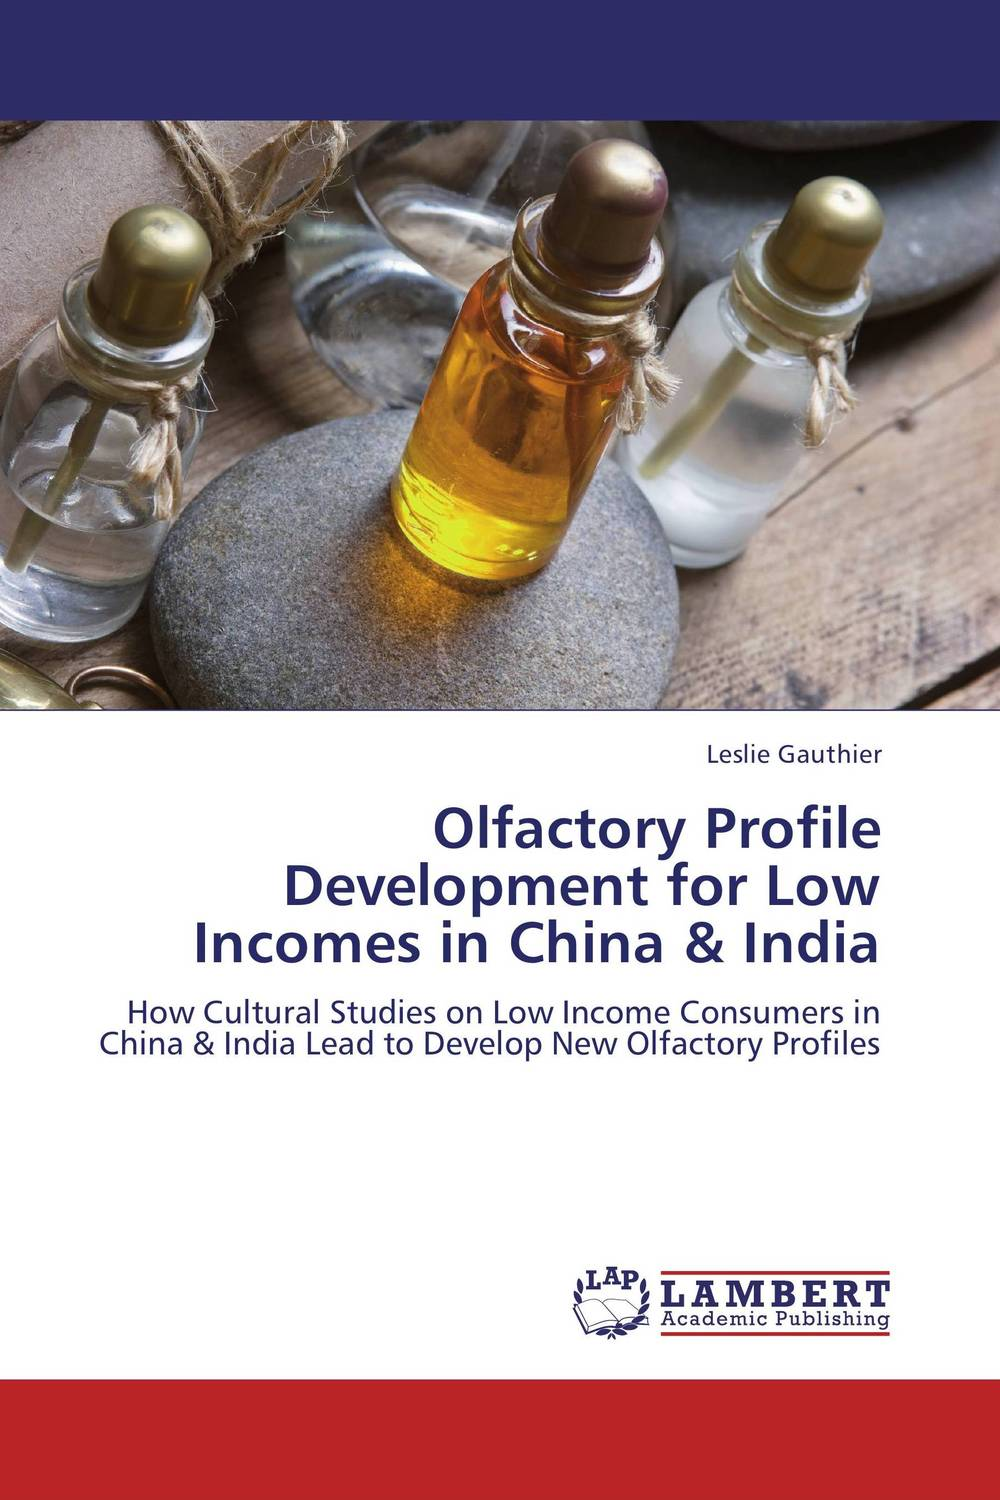 Olfactory Profile Development for Low Incomes in China & India kenneth rosen d investing in income properties the big six formula for achieving wealth in real estate